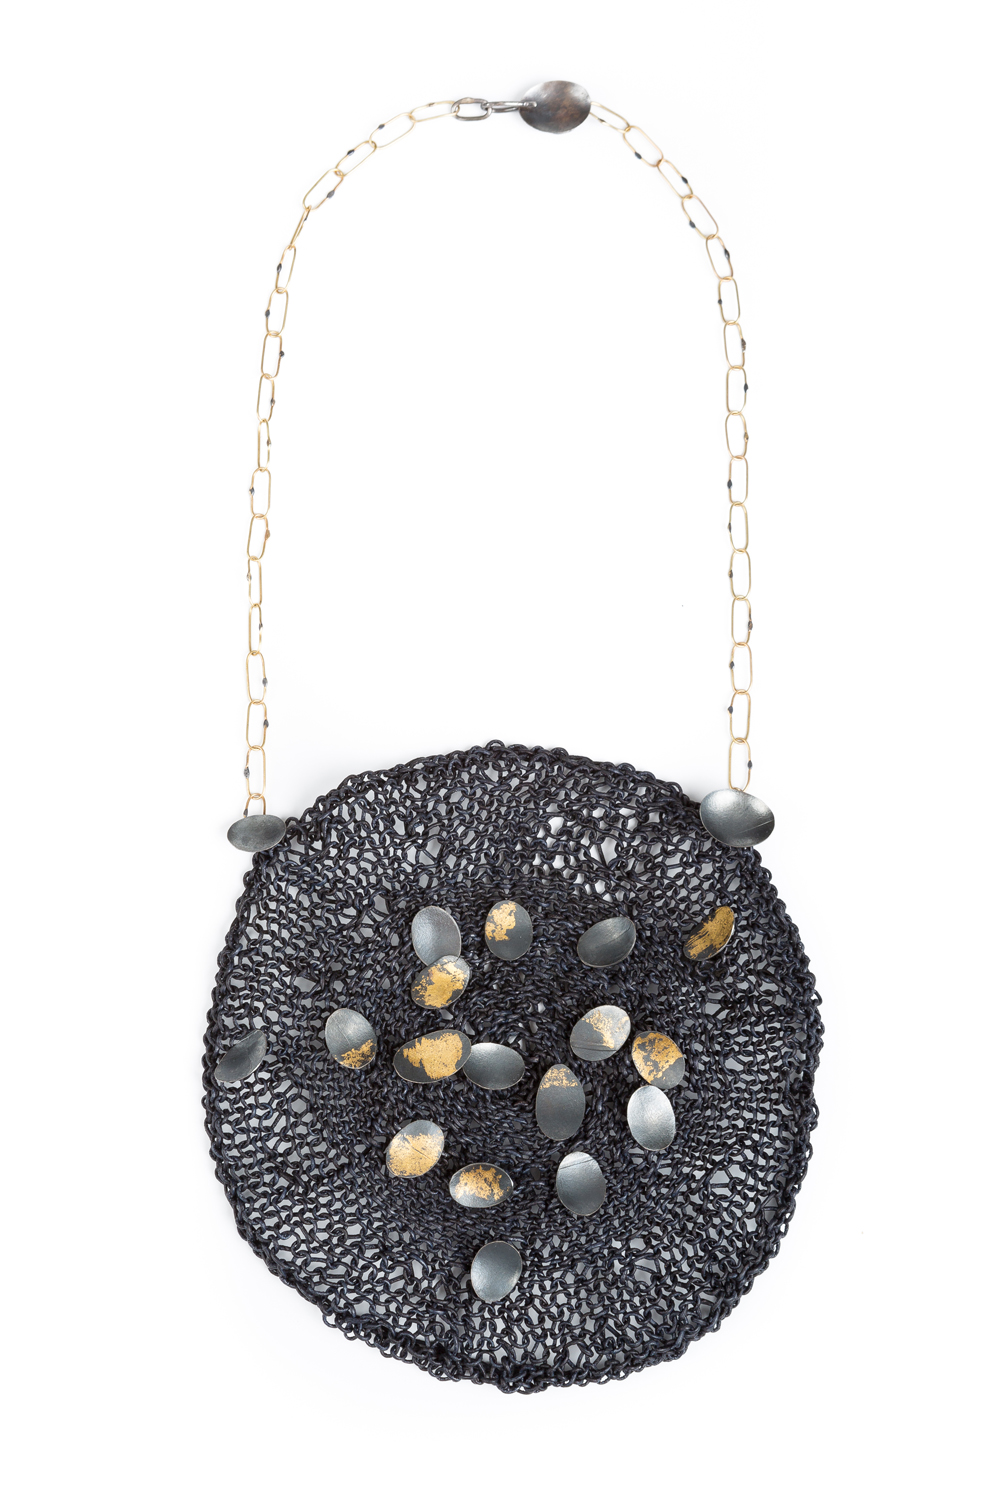 "Brooke Marks-Swanson, Basket#10 Neckpiece, 2016, Leather, silver, 18k gold, 22k gold leaf, 6"" diameter, 24"" long"